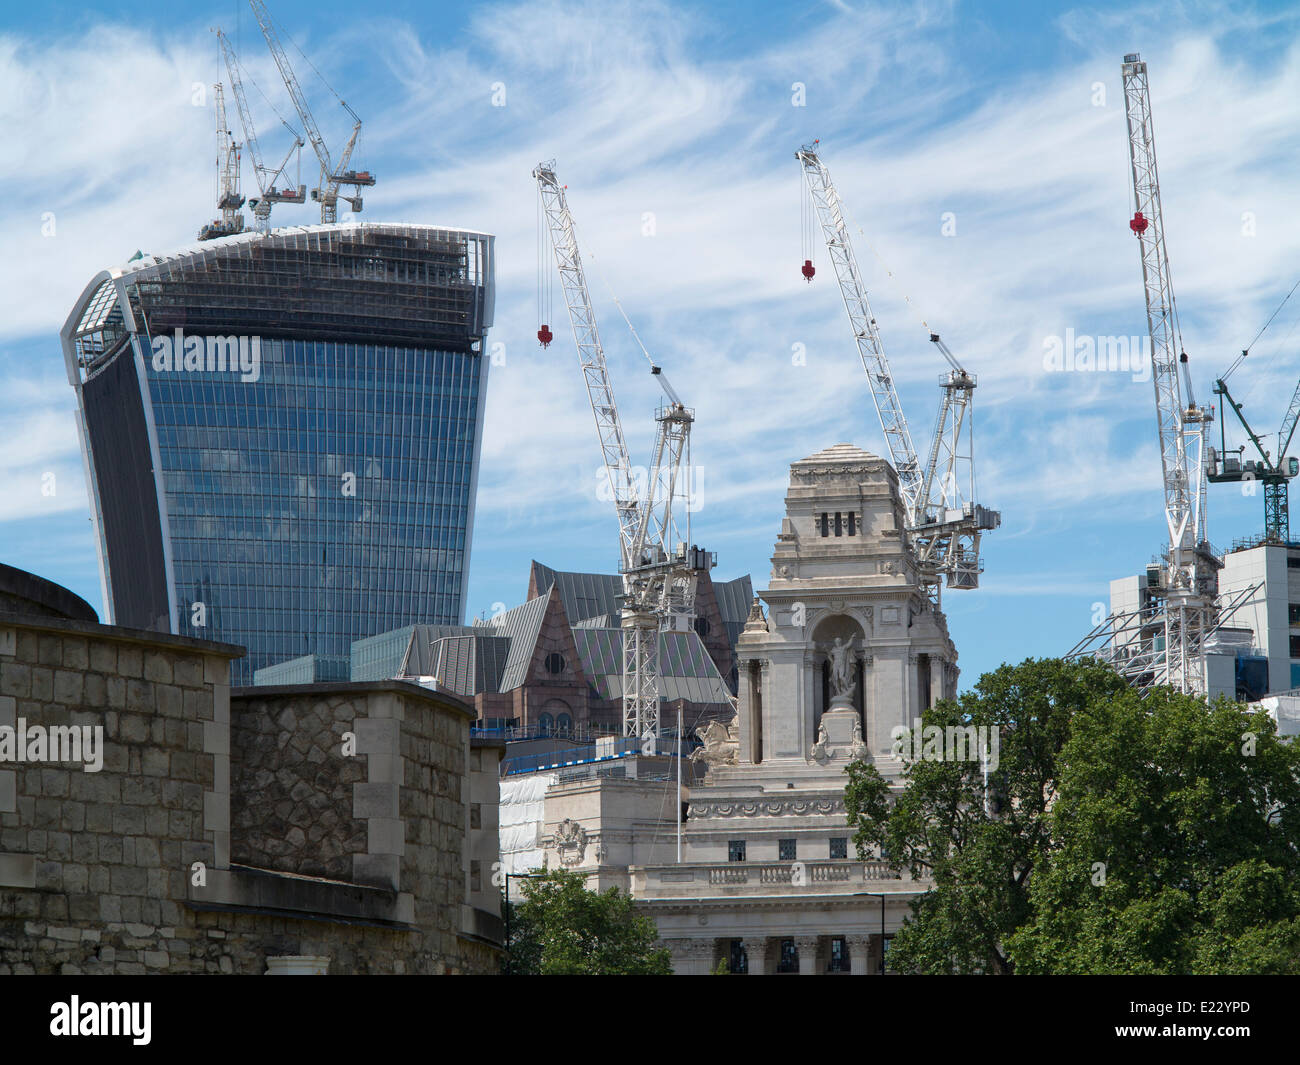 London skyline with mixed style and age buildings including The Walkie-Talkie skyscraper surrounded by cranes - Stock Image